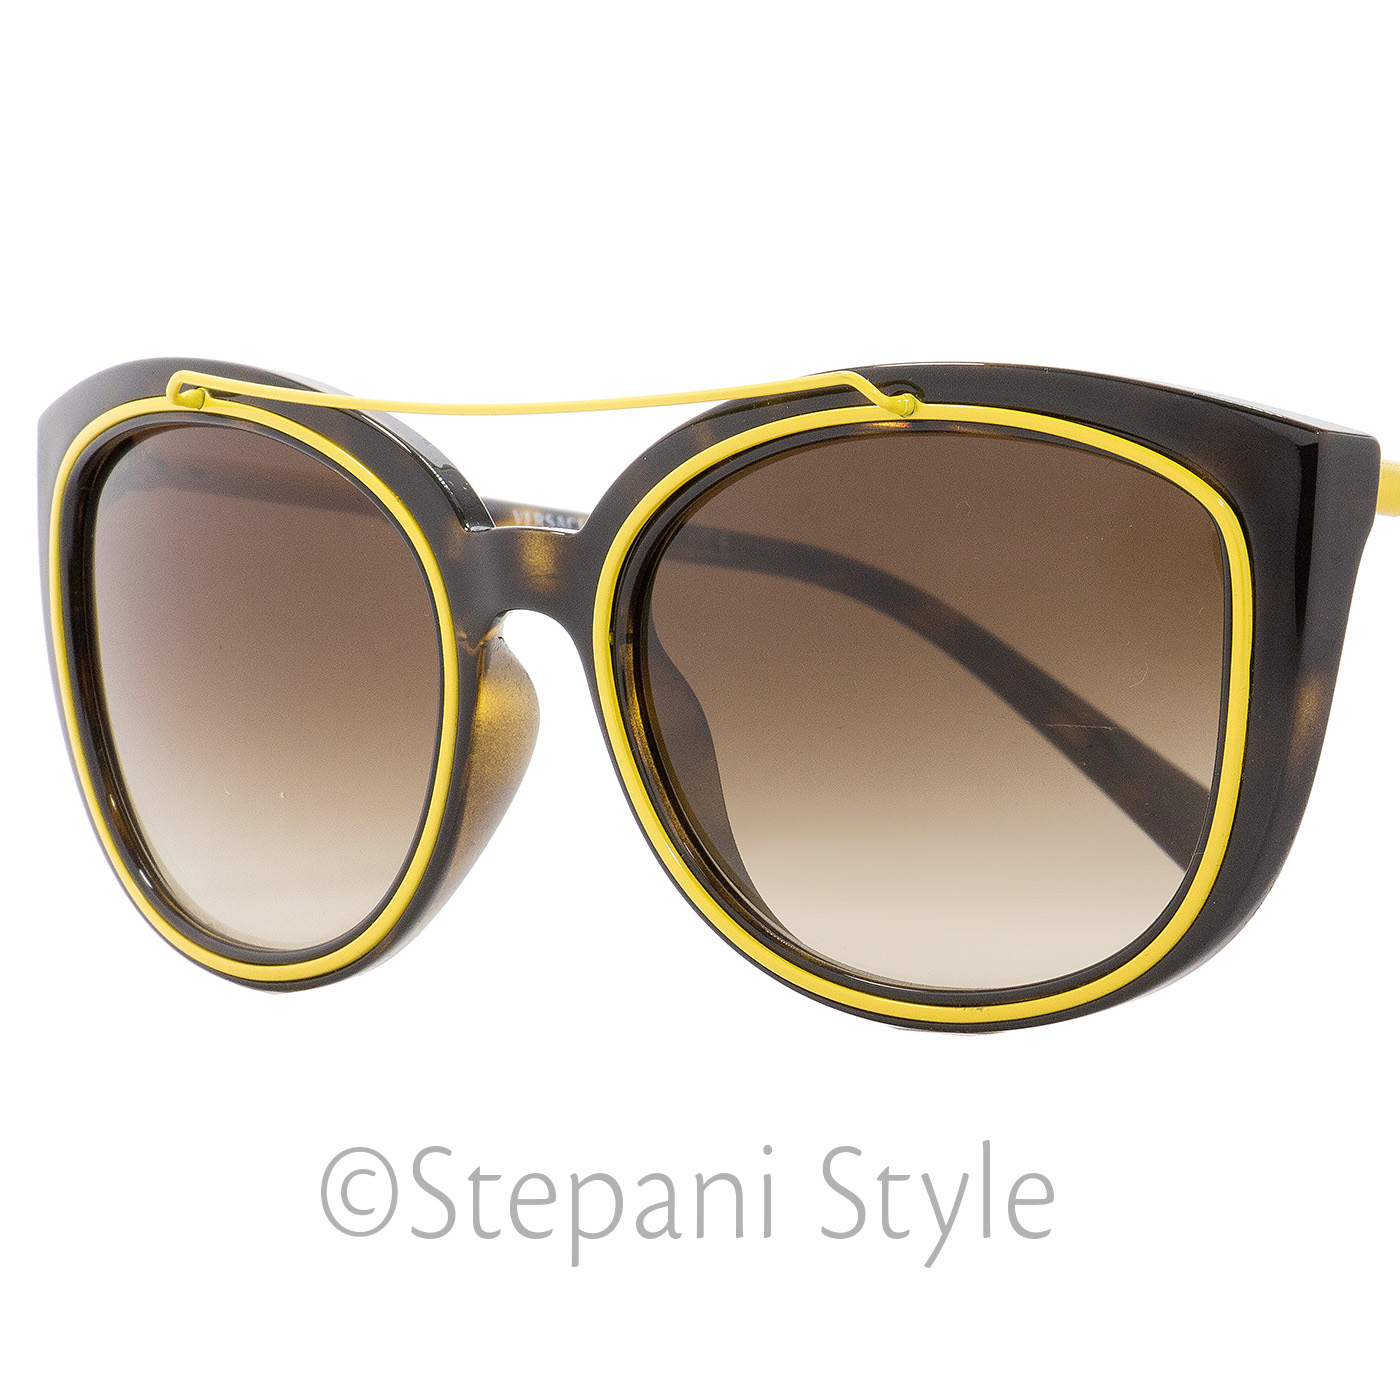 85c58c8afcbde Image is loading Versace-Oval-Sunglasses-VE4336-108-13-Havana-Yellow-